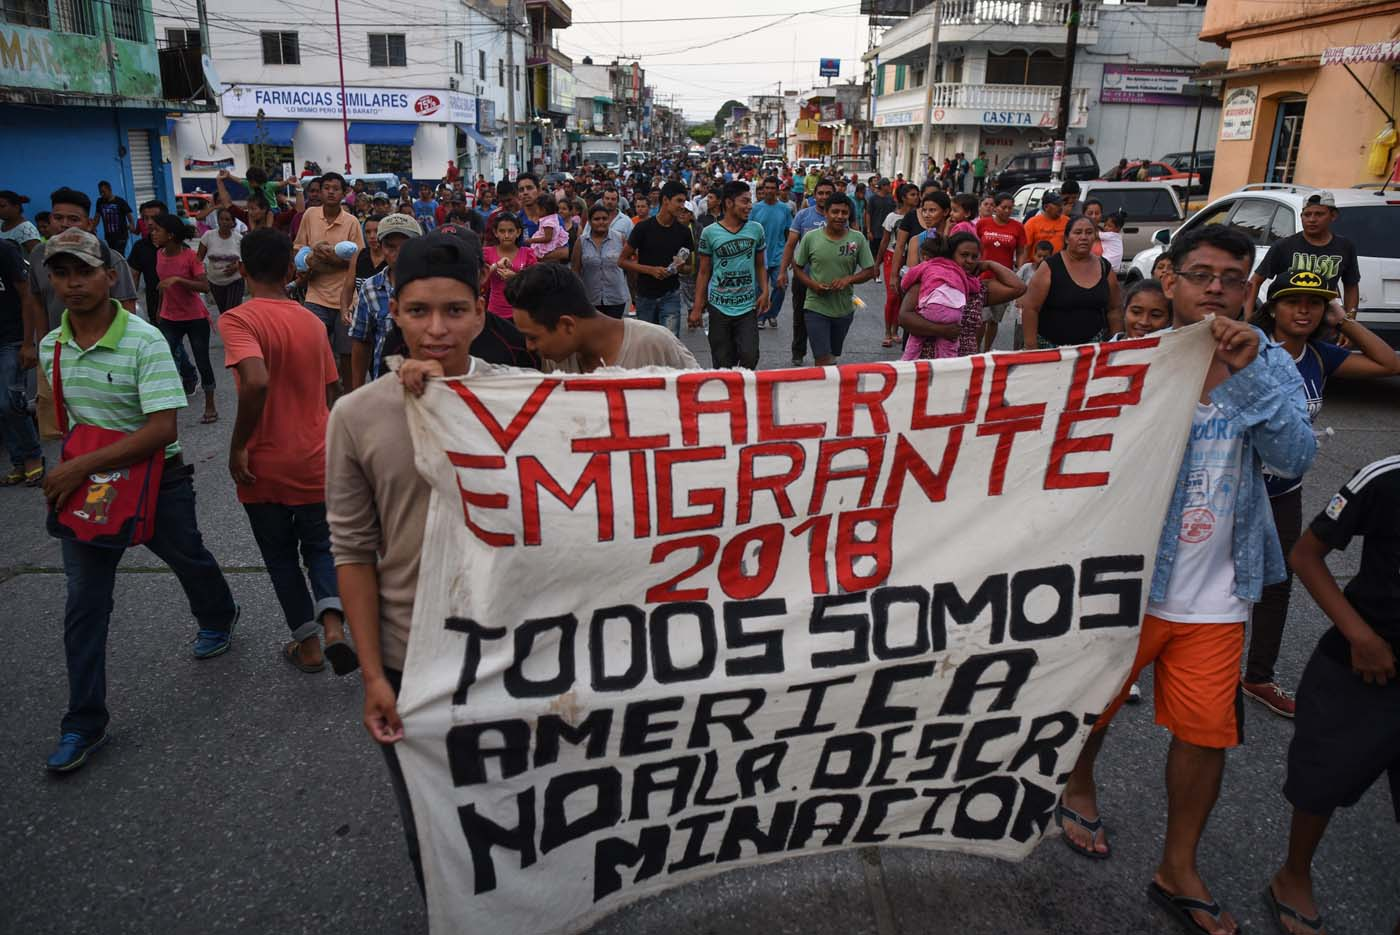 """Central American migrants taking part in a caravan called """"Migrant Viacrucis"""" towards the United States hold a banner reading """"Emigrant Viacrucis 2018. We are all America. No to discrimination"""" as they march to protest against US President Donald Trump's policies in Matias Romero, Oaxaca State, Mexico, on April 3, 2018. The hundreds of Central Americans in the """"Way of the Cross"""" migrant caravan have infuriated Trump, but they are not moving very fast -- if at all -- and remain far from the US border. As Trump vowed Tuesday to send troops to secure the southern US border, the caravan was camped out for the third straight day in the town of Matias Romero, in southern Mexico, more than 3,000 kilometers (1,800 miles) from the United States. / AFP PHOTO / VICTORIA RAZO"""